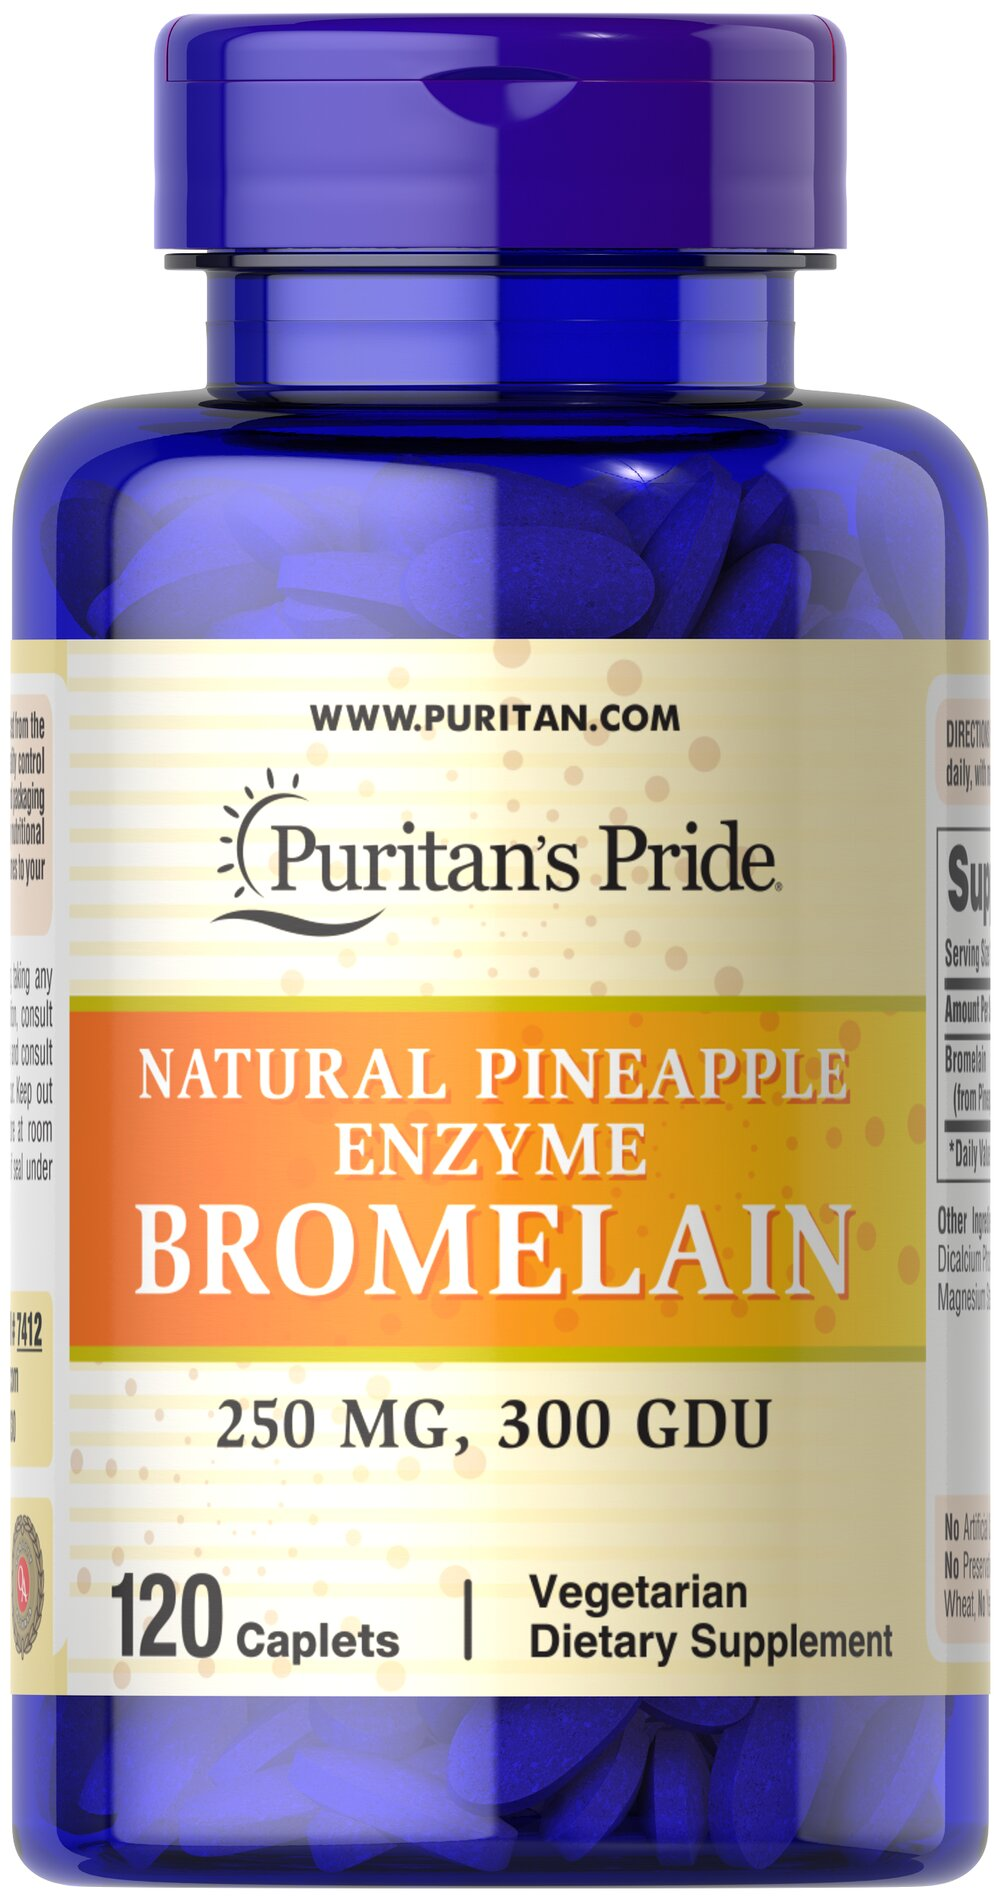 Bromelain 500 mg 300 GDU/gram <p>Derived from the stems of pineapple, Bromelain is a natural digestive enzyme.** </p><p>As a natural enzyme, Bromelain helps digest protein in the gastrointestinal tract.** </p><p>In general, enzymes break down the nutritional components of proteins, fats and carbohydrates, making these nutrients available for the body's energy needs, cell growth and other vital functions.**</p> 120 Caplets 500 mg $24.99